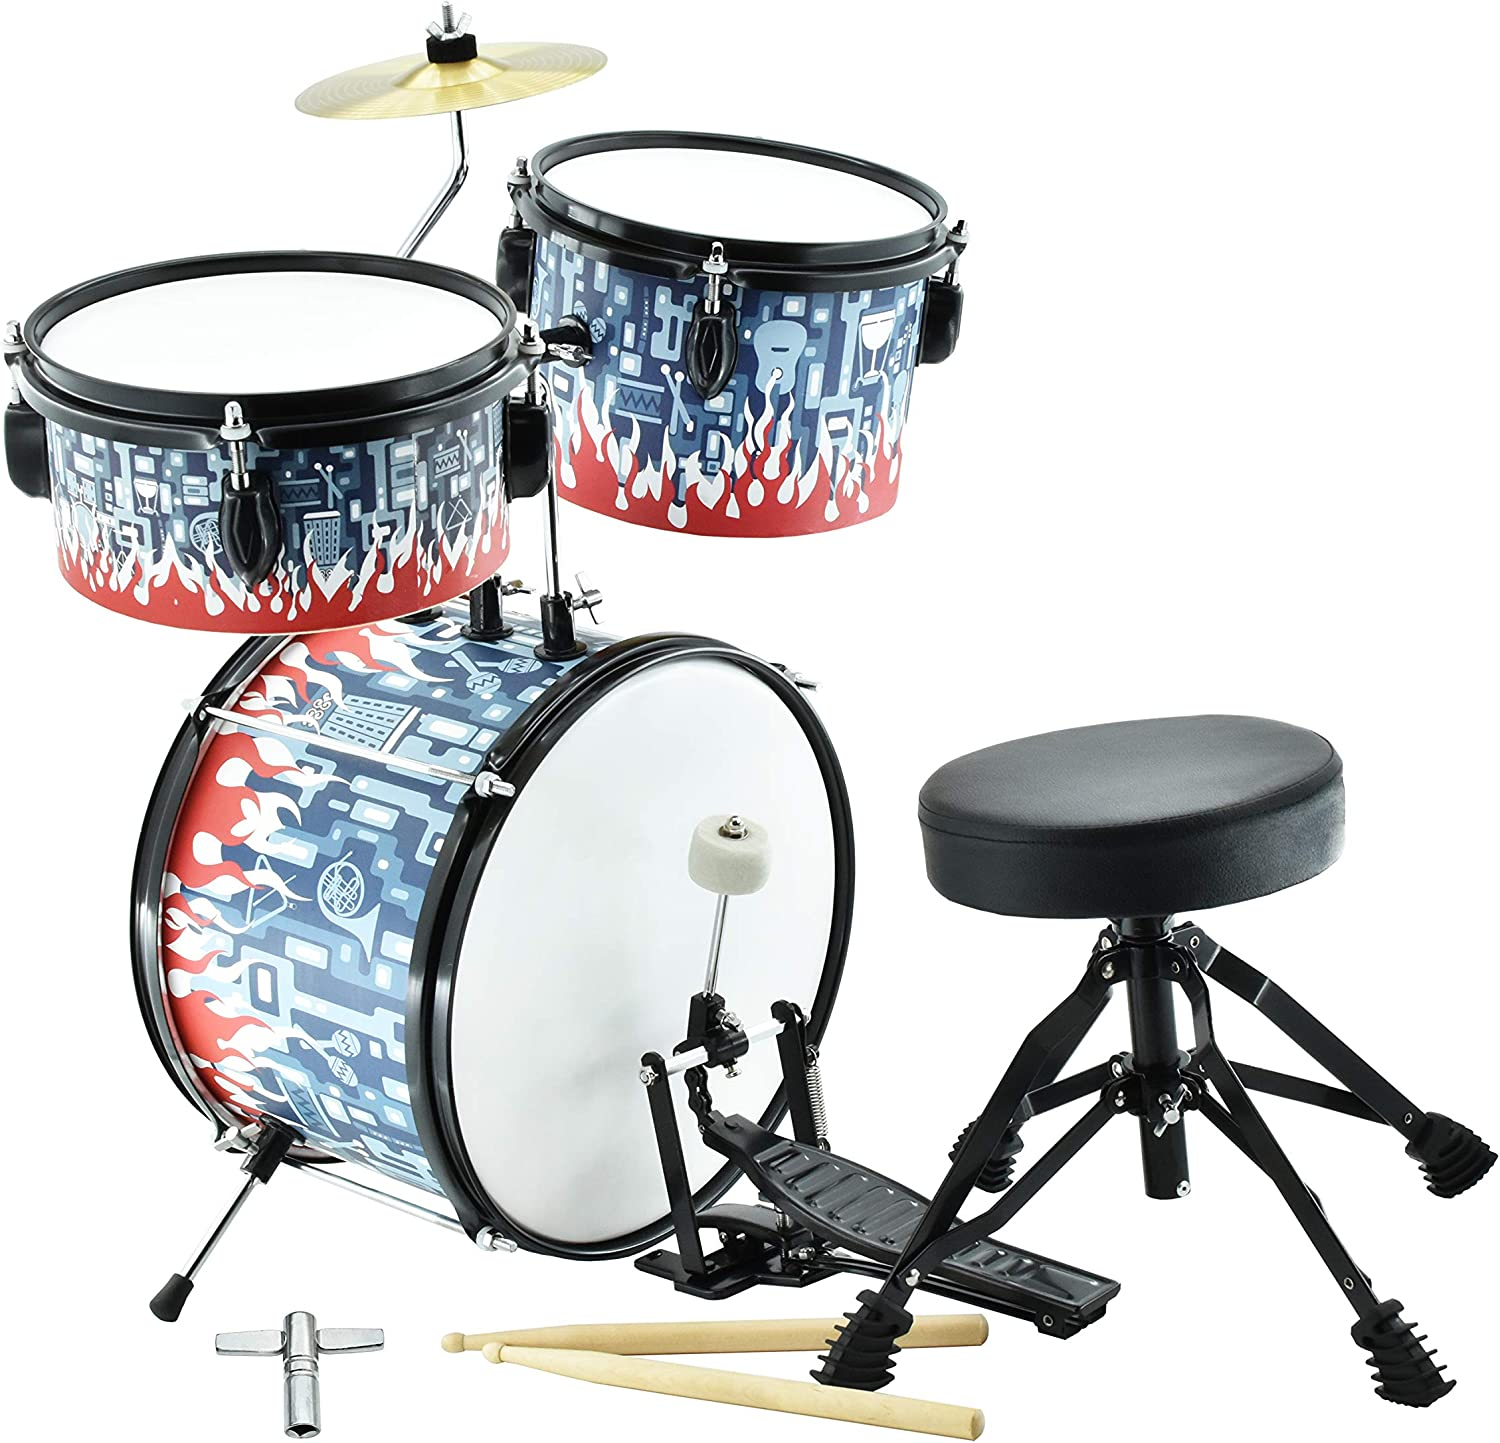 MUSICUBE Junior Drum Set, Kids Drum Set 10 inch 3-Piece with Adjustable Throne, Cymbal, Pedal & Hardwood Drumsticks, Fire Flower Painted Model